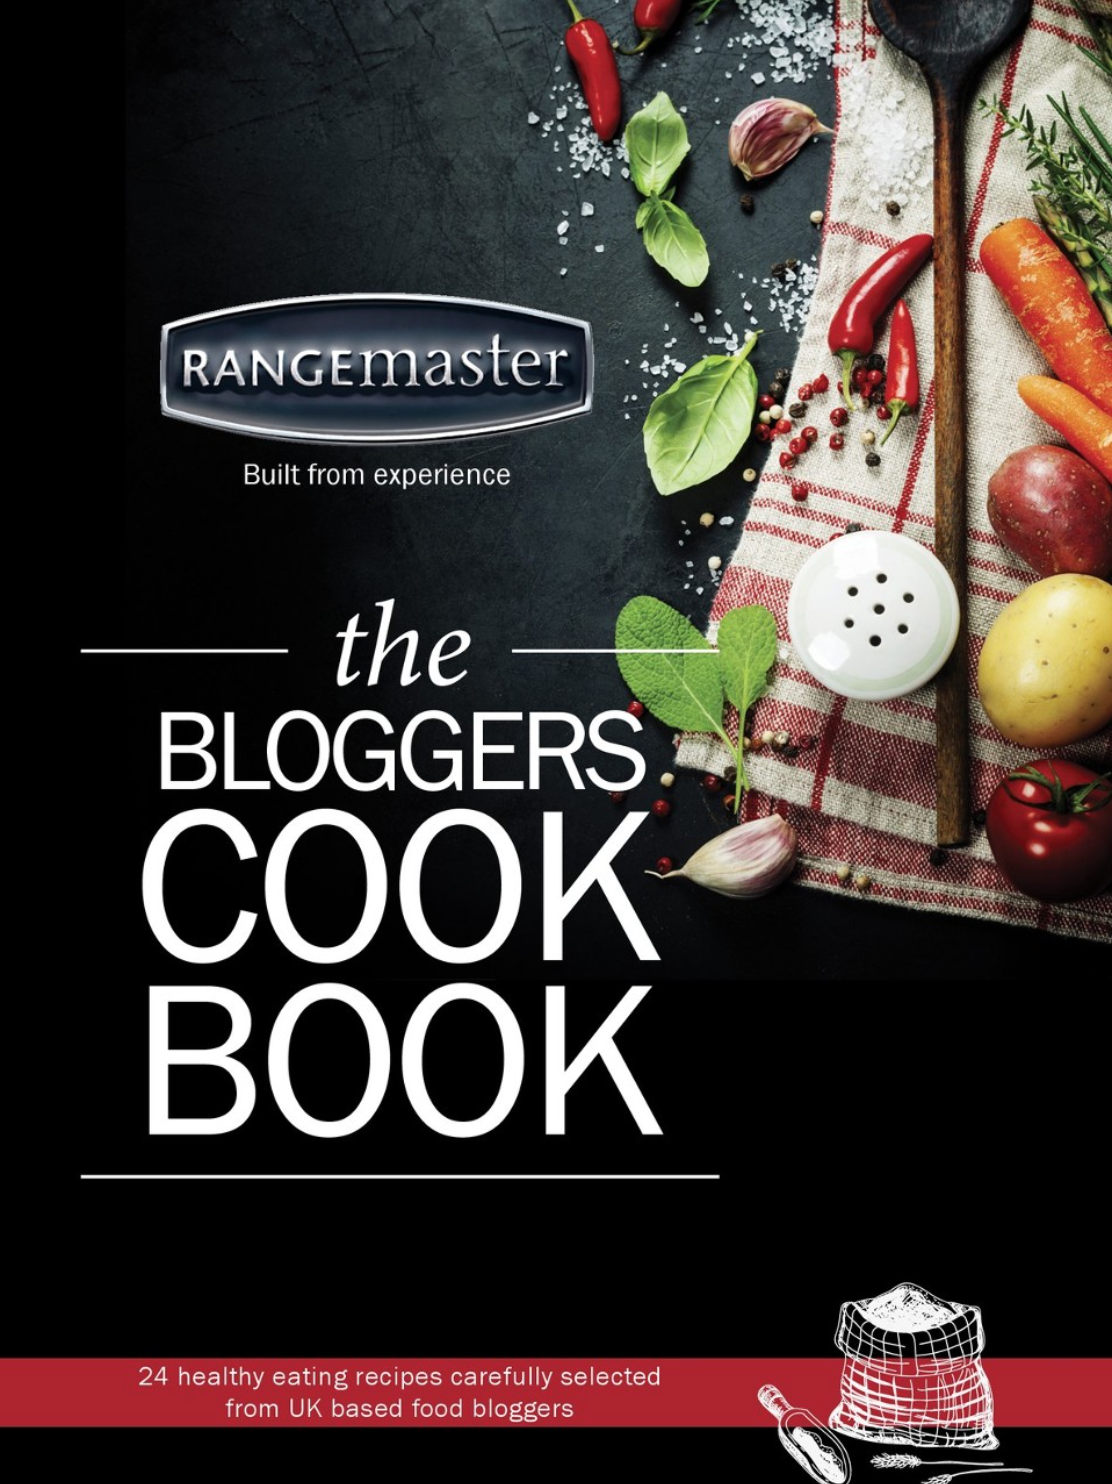 The Aga Rangemaster Bloggers' Cookbook